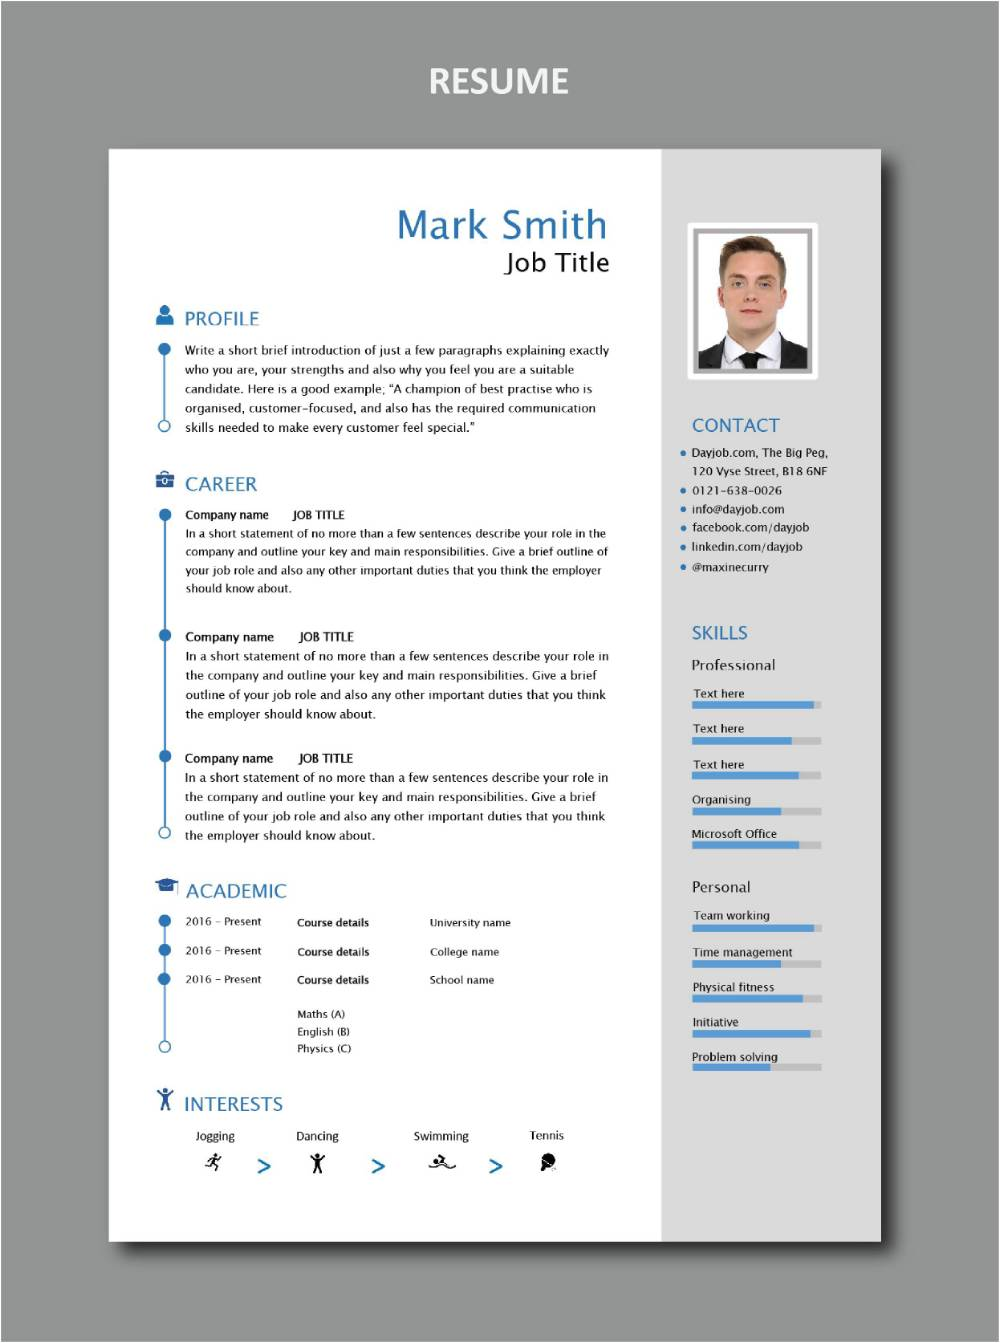 Modern Resume Template 5 Get Invited To A Job Interview Career Work